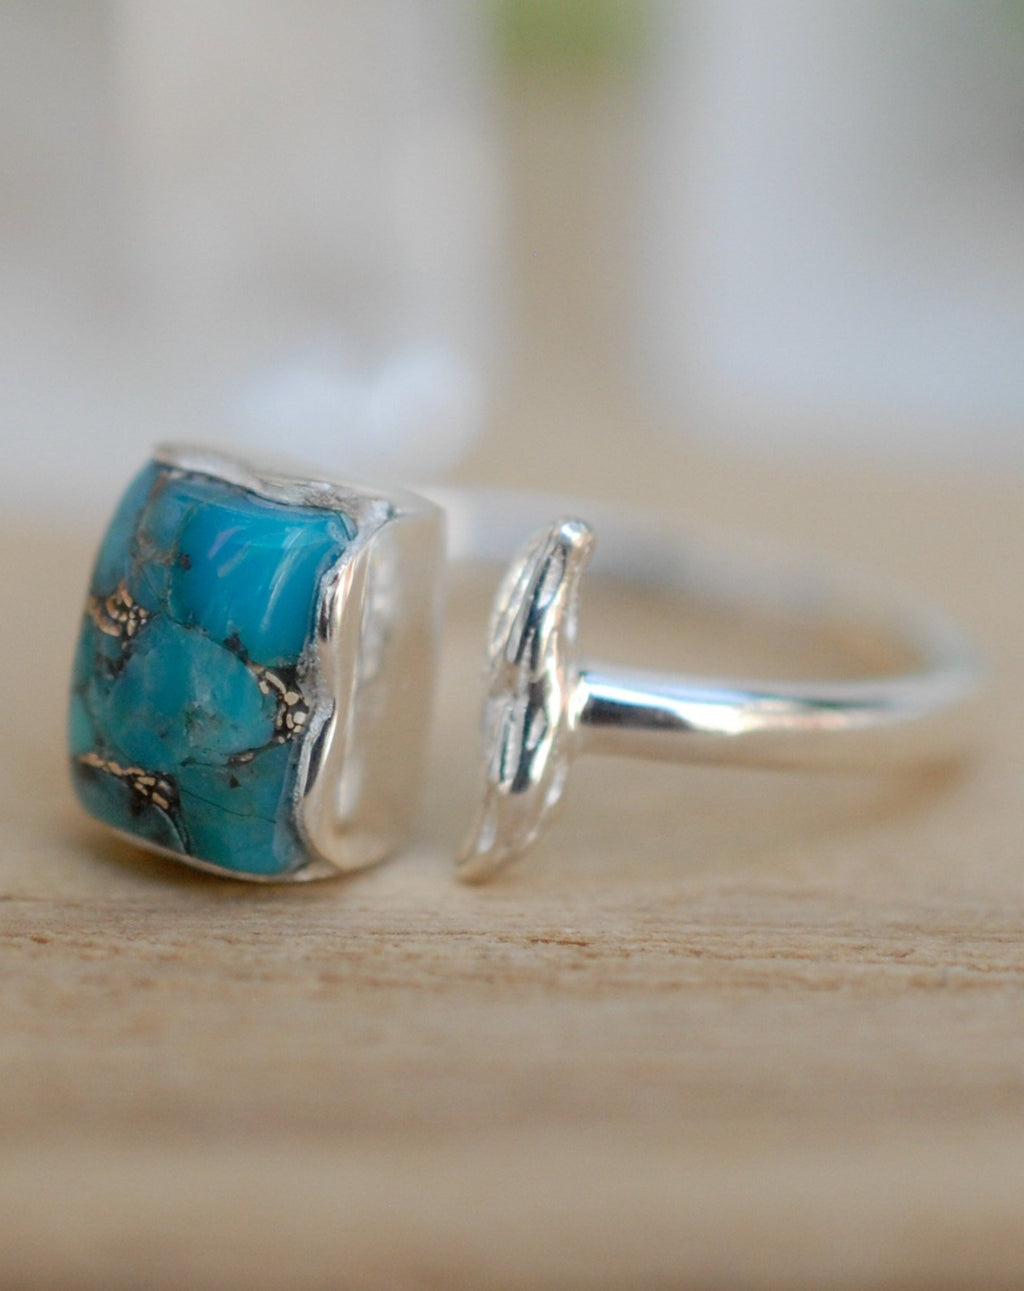 Copper Turquoise Ring * Sterling Silver 925 * Adjustable * Bridal * Wedding * Wrap * Boho * Jewelry *Gemstone *Mermaid *Blue* BJR095